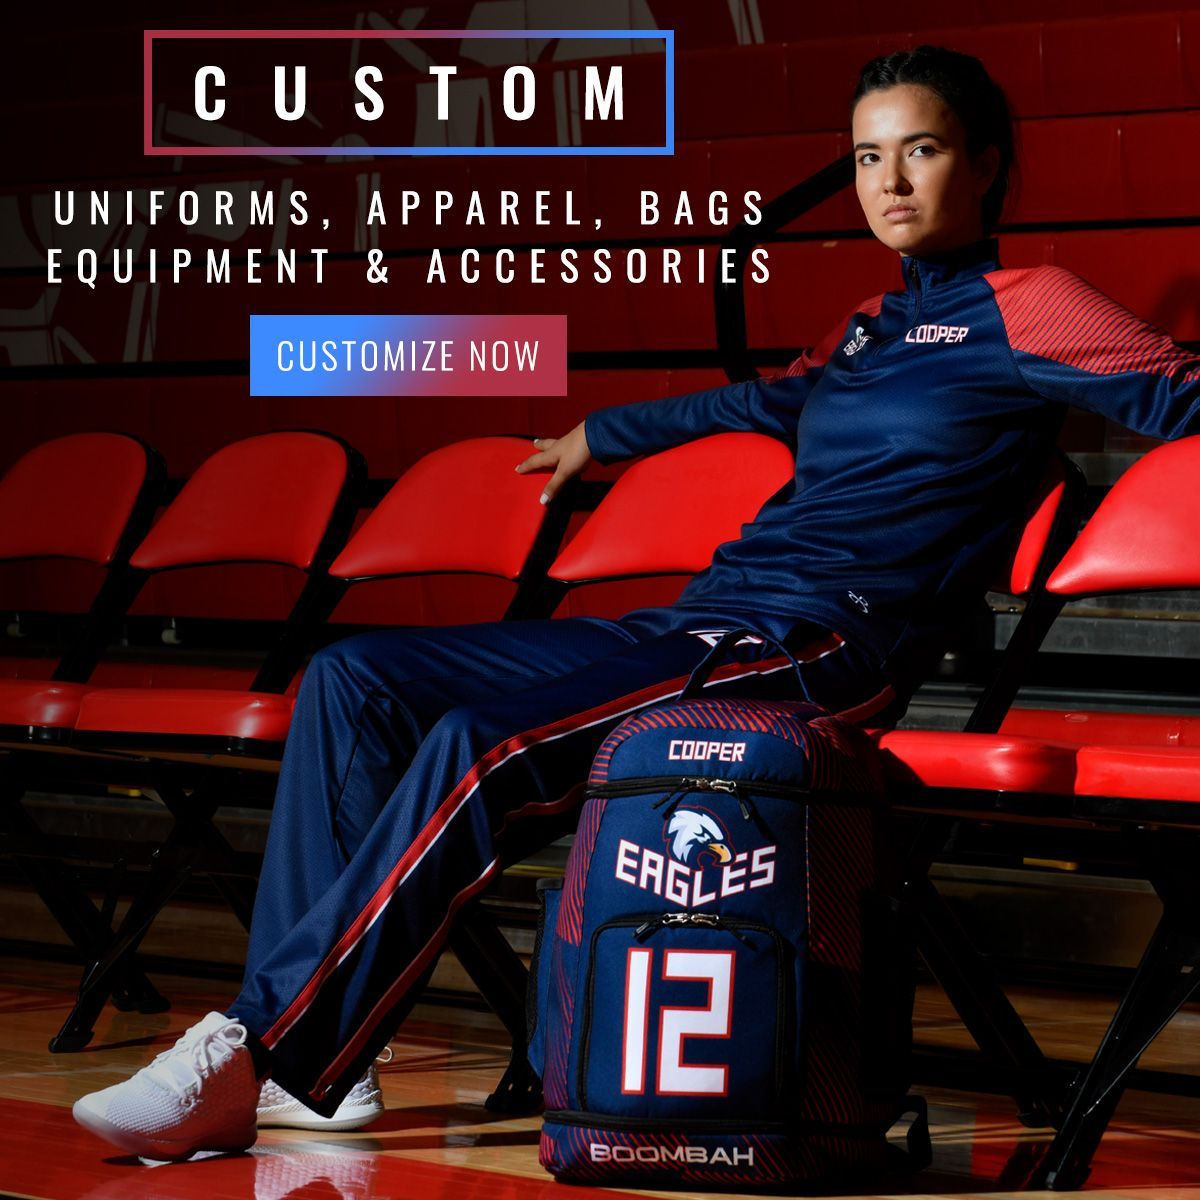 From Uniforms To Apparel Bags Equipment And Accessories Boombah Has All Your Custom Needs Covered Apparel Team Apparel Baseball Clothing And Equipment